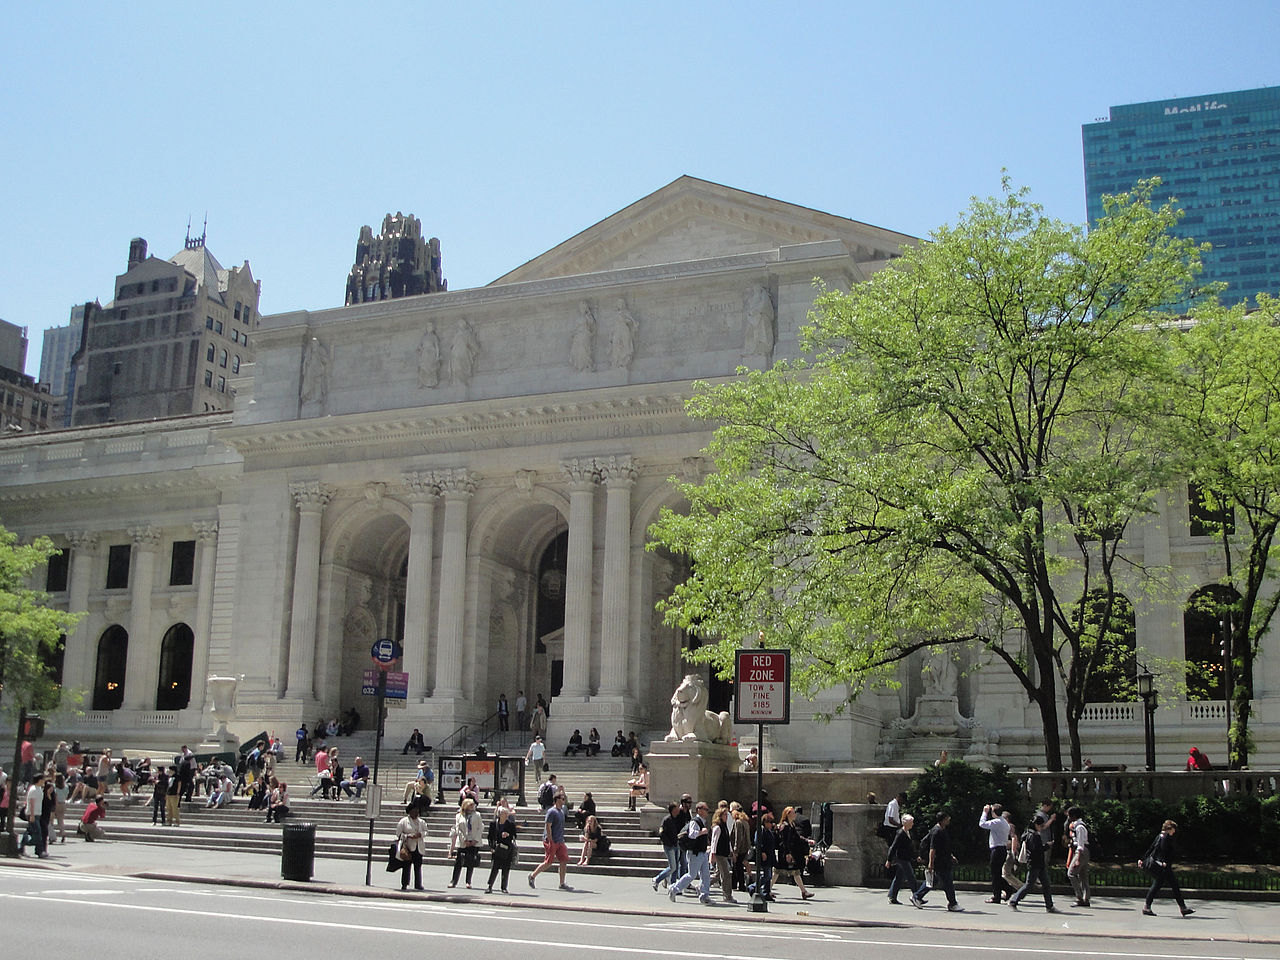 American Library Association The New York Public Library And American Library Association